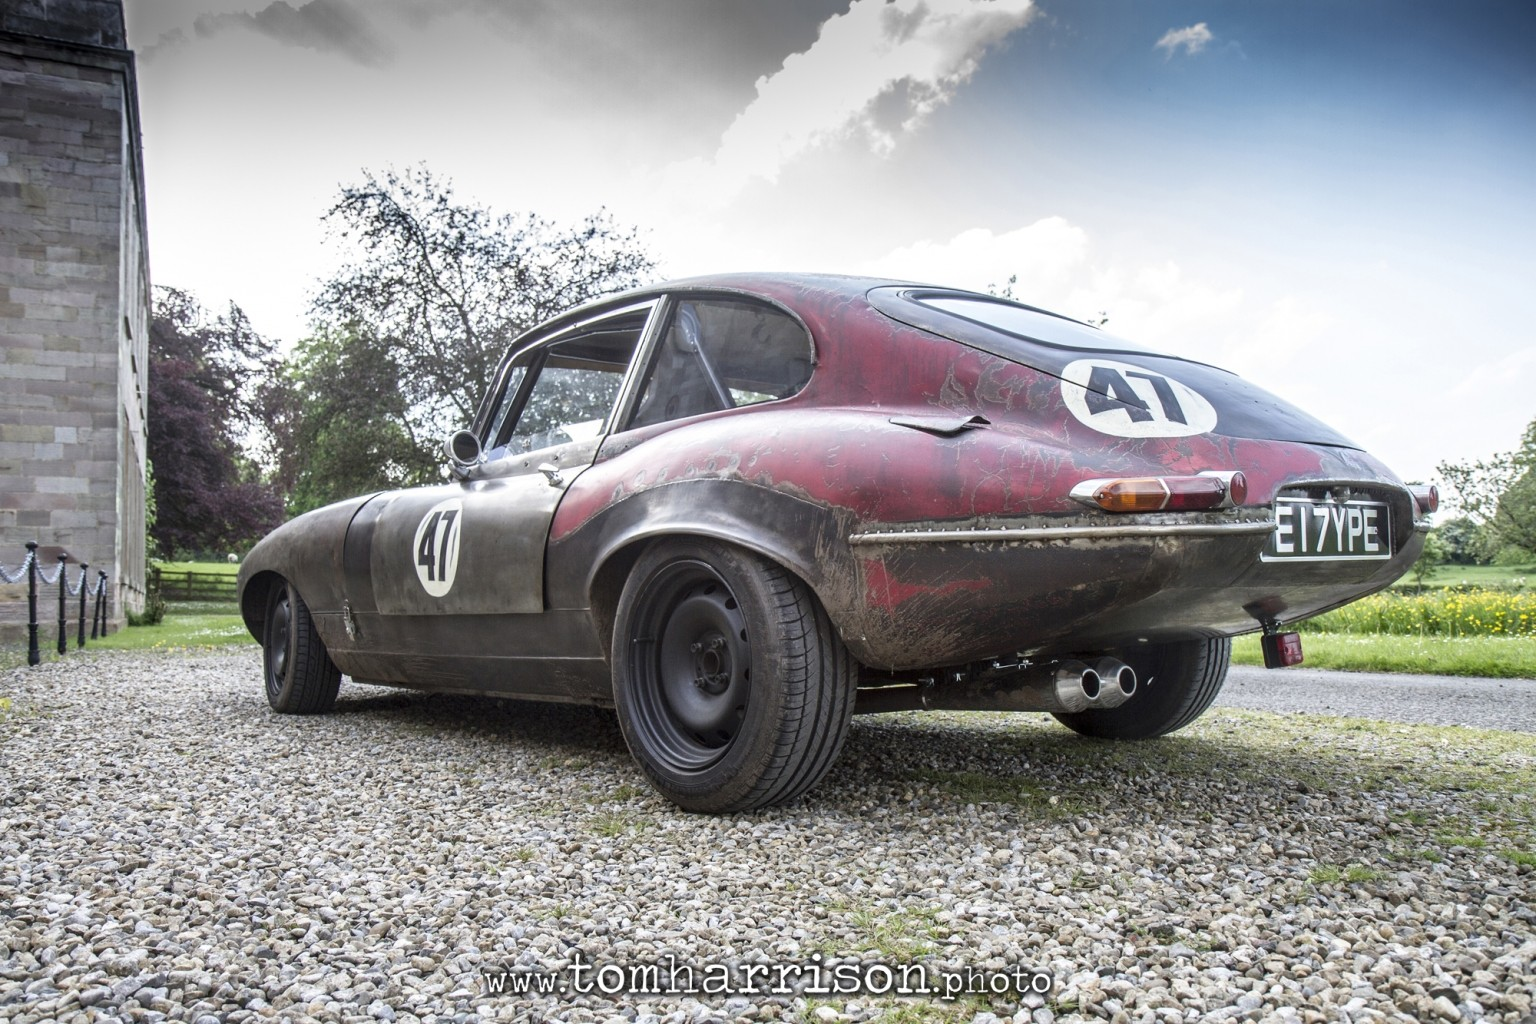 Monstrous E Type Is The Name Of An English Cat With Rat Rod Mods Photo Gallery